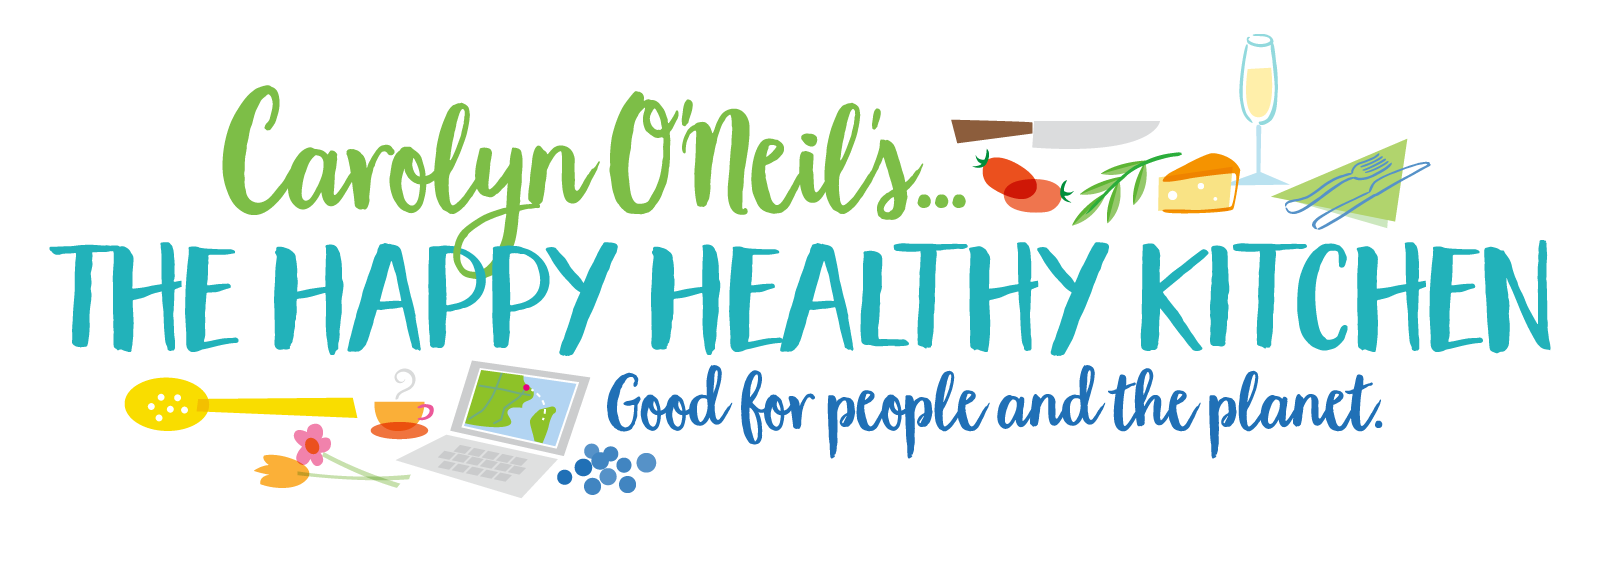 Trim Your Tailgate Party – The Happy Healthy Kitchen